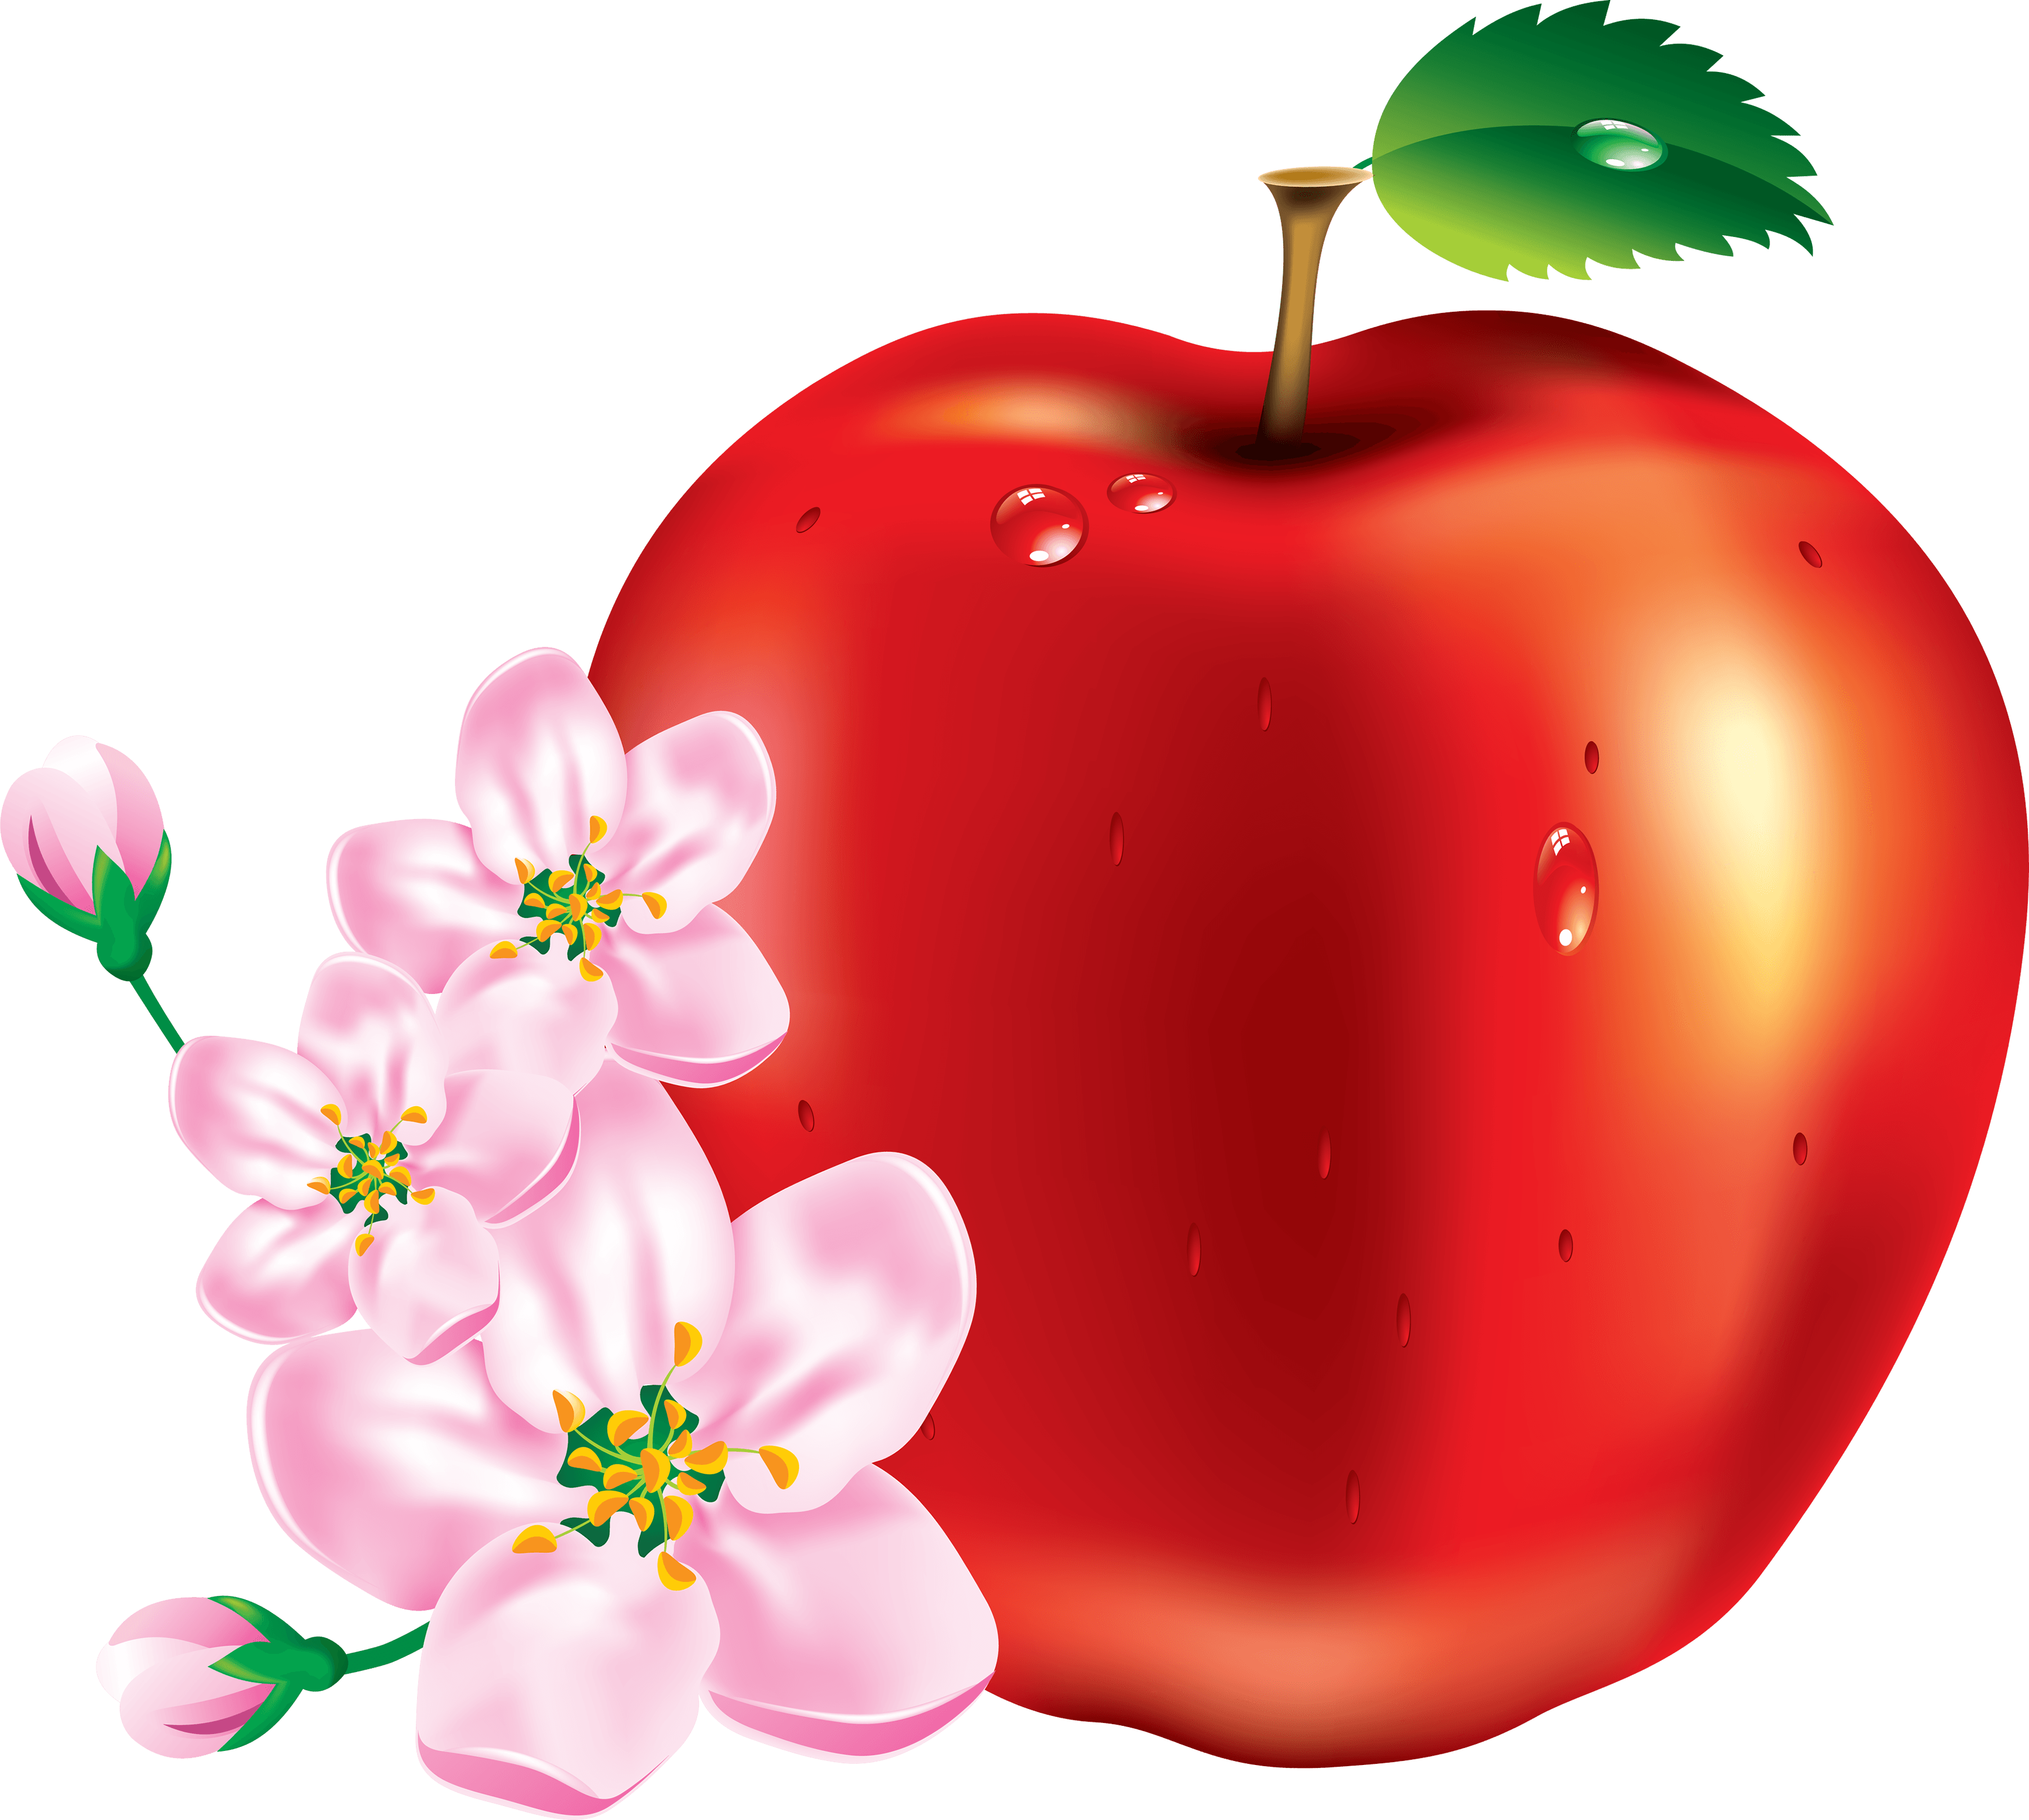 Clipart red apple clipart freeuse library 50 Red Apple Png Image clipart freeuse library